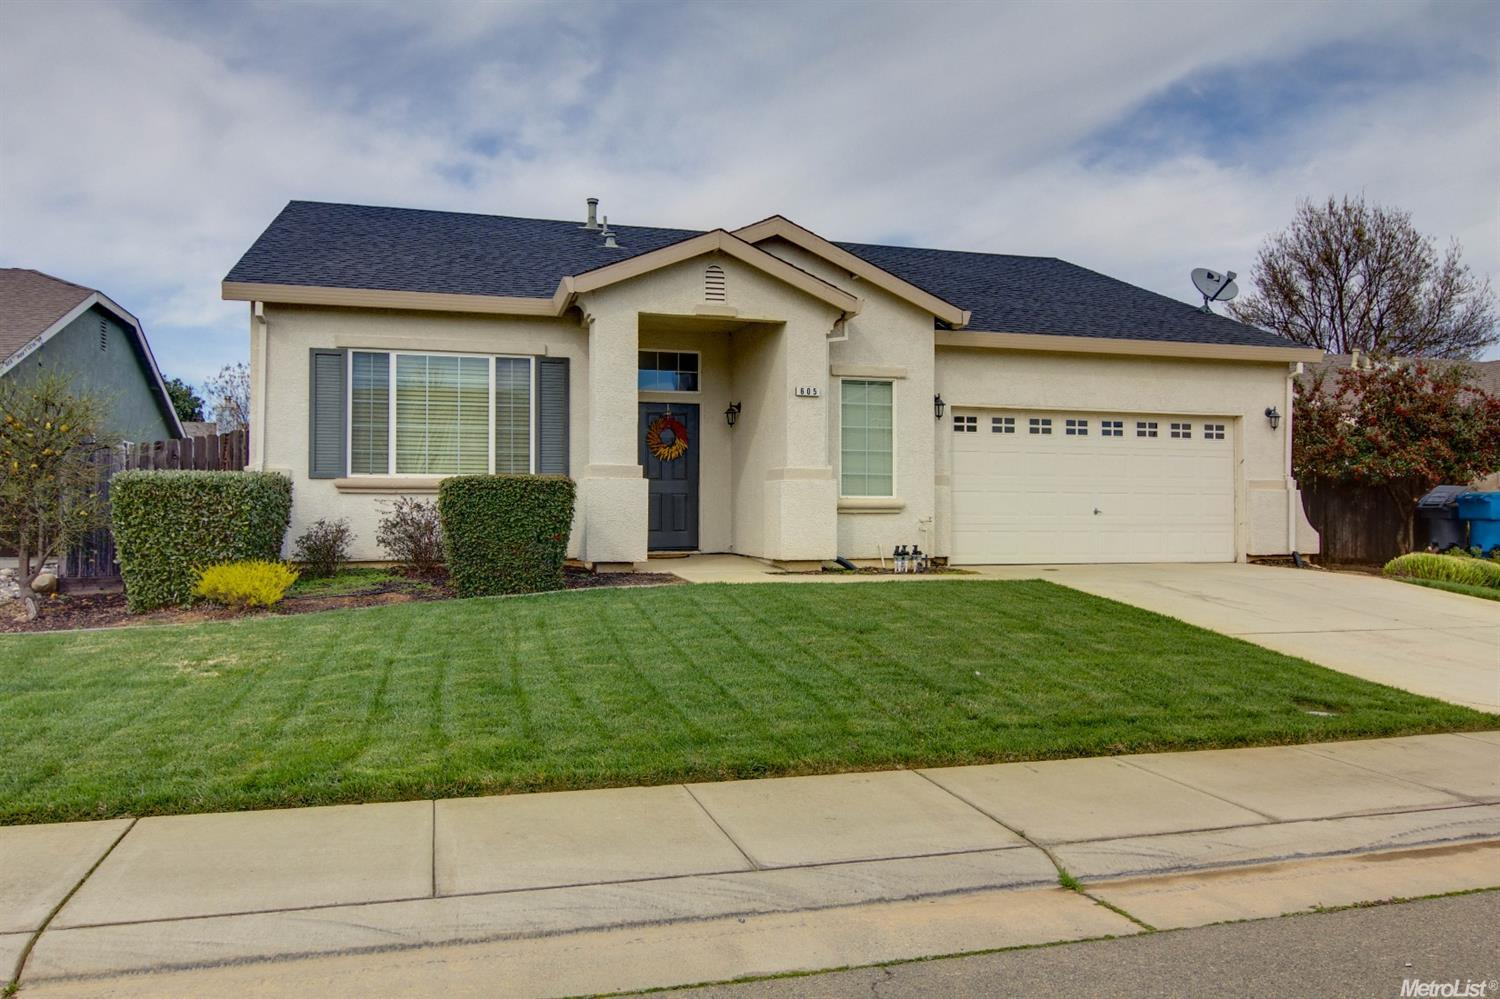 605 Nightingale Way, Wheatland, CA 95692